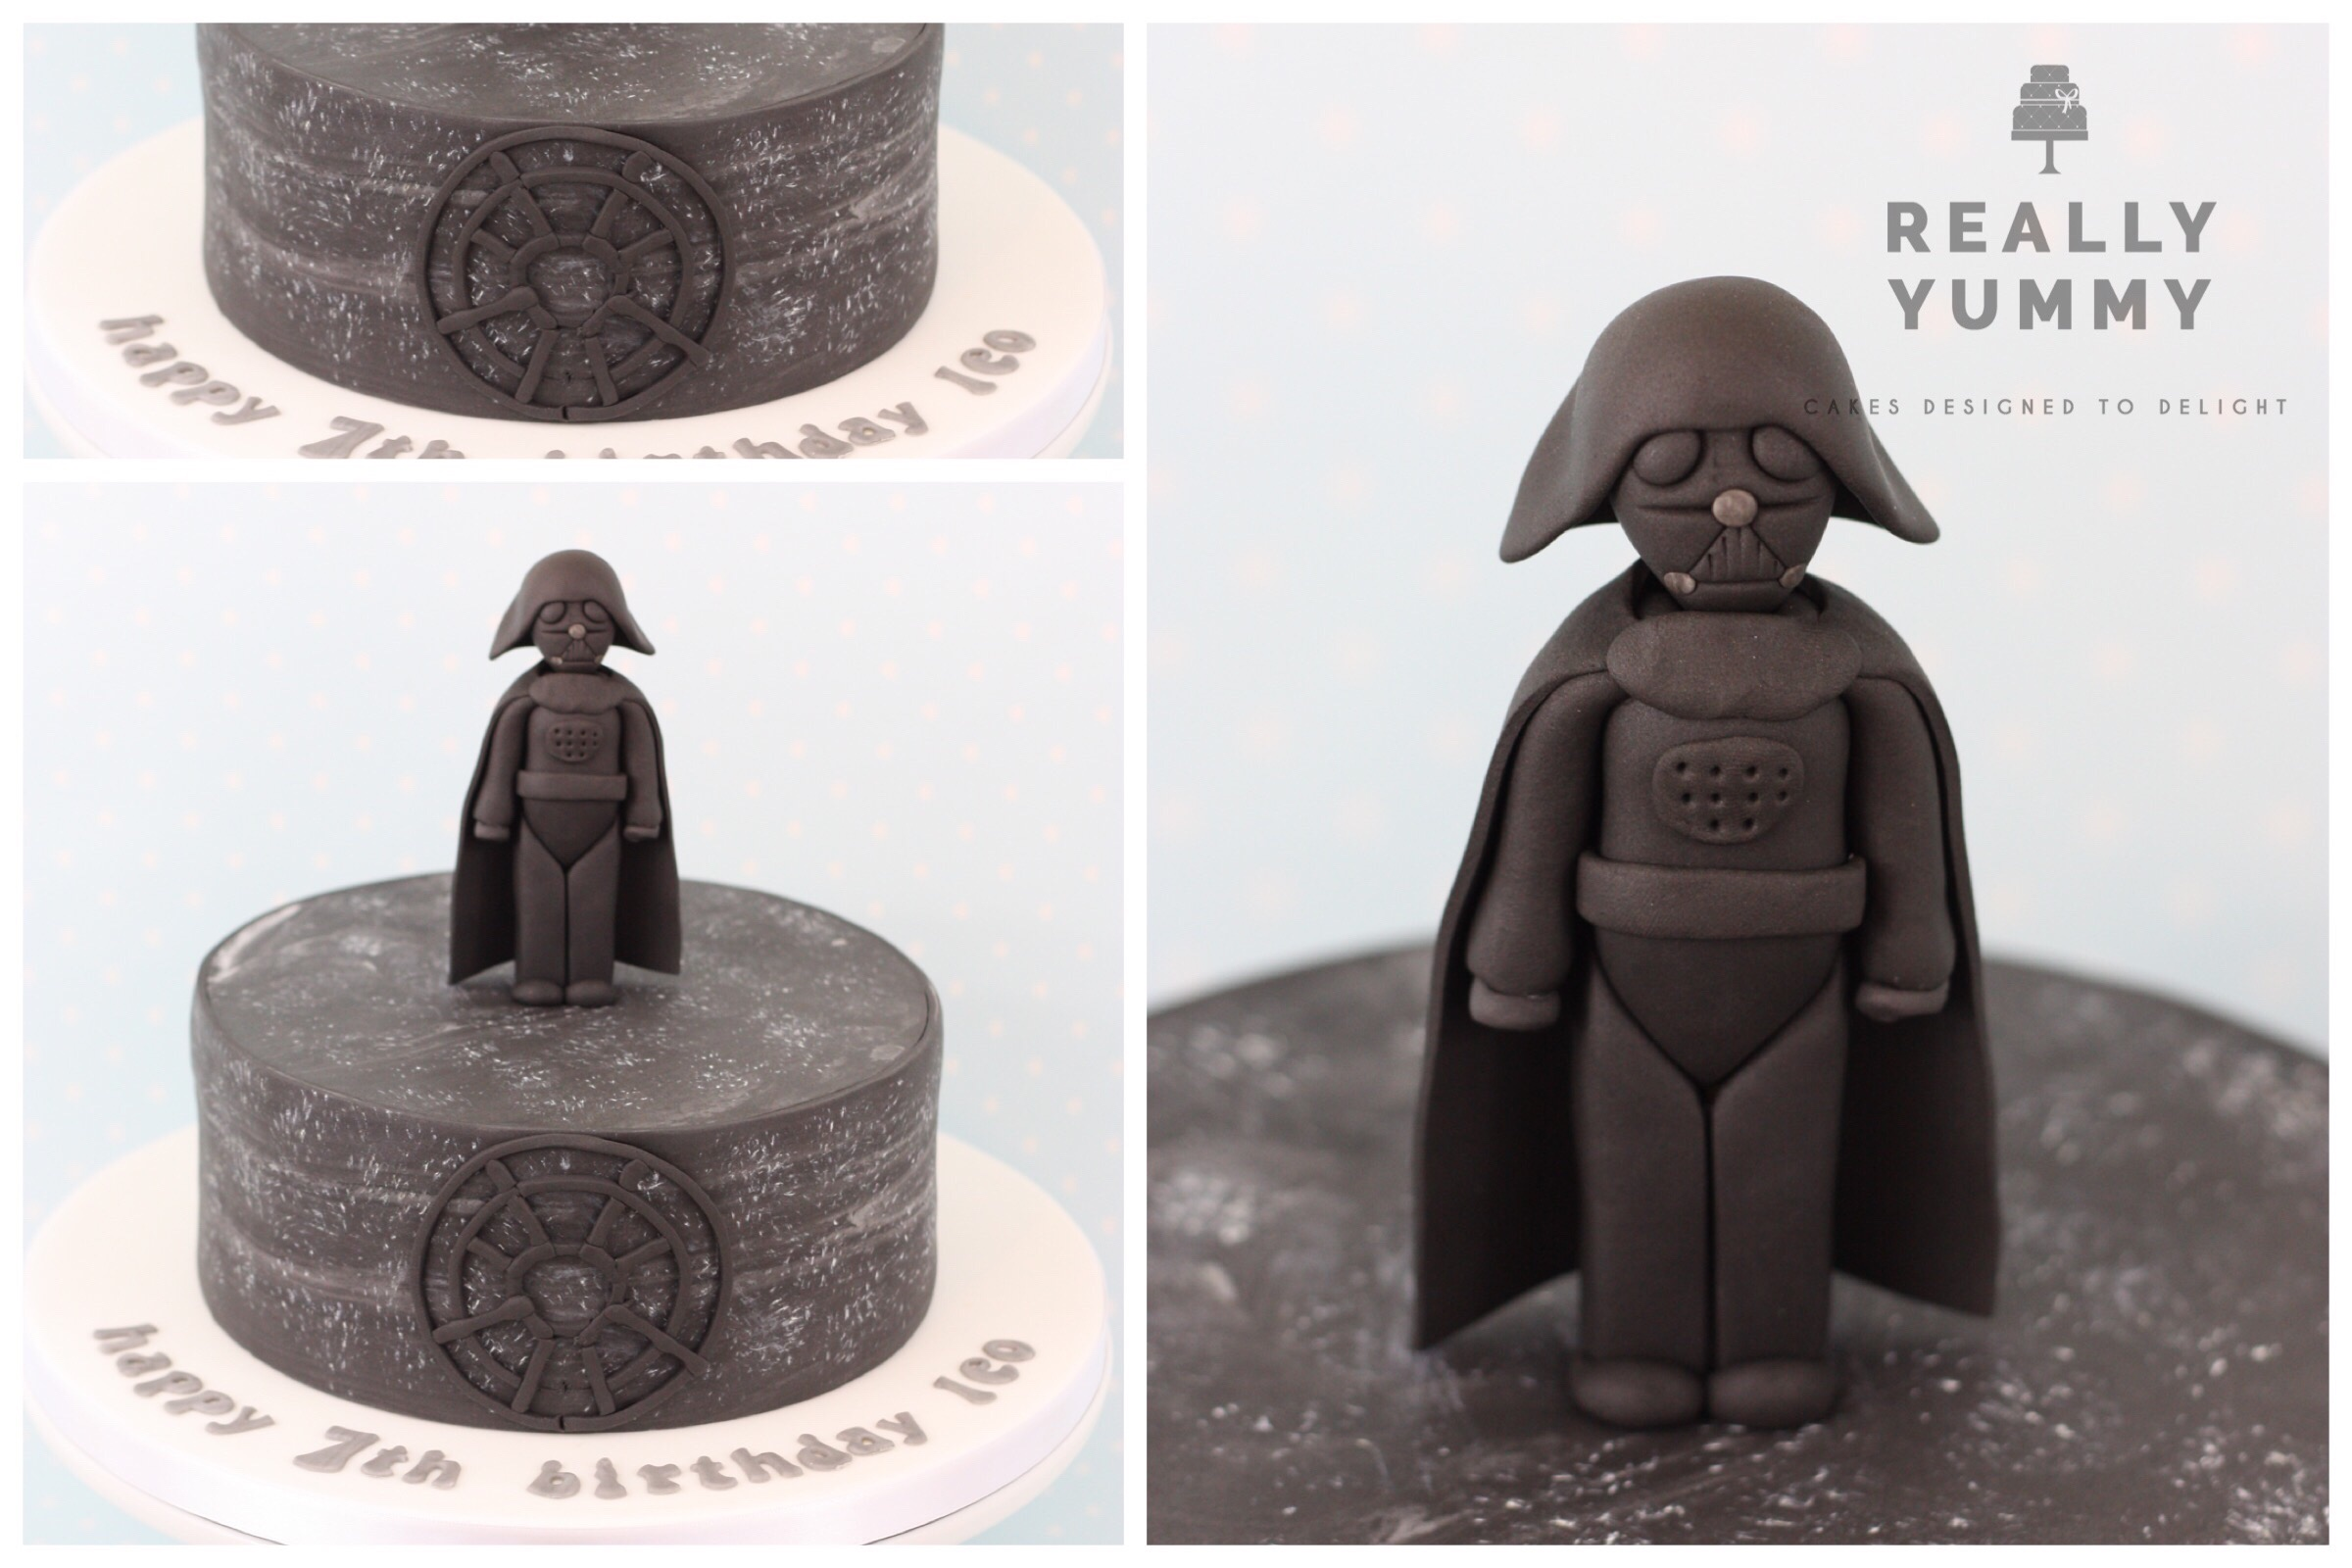 Star Wars cake, with Darth Vader